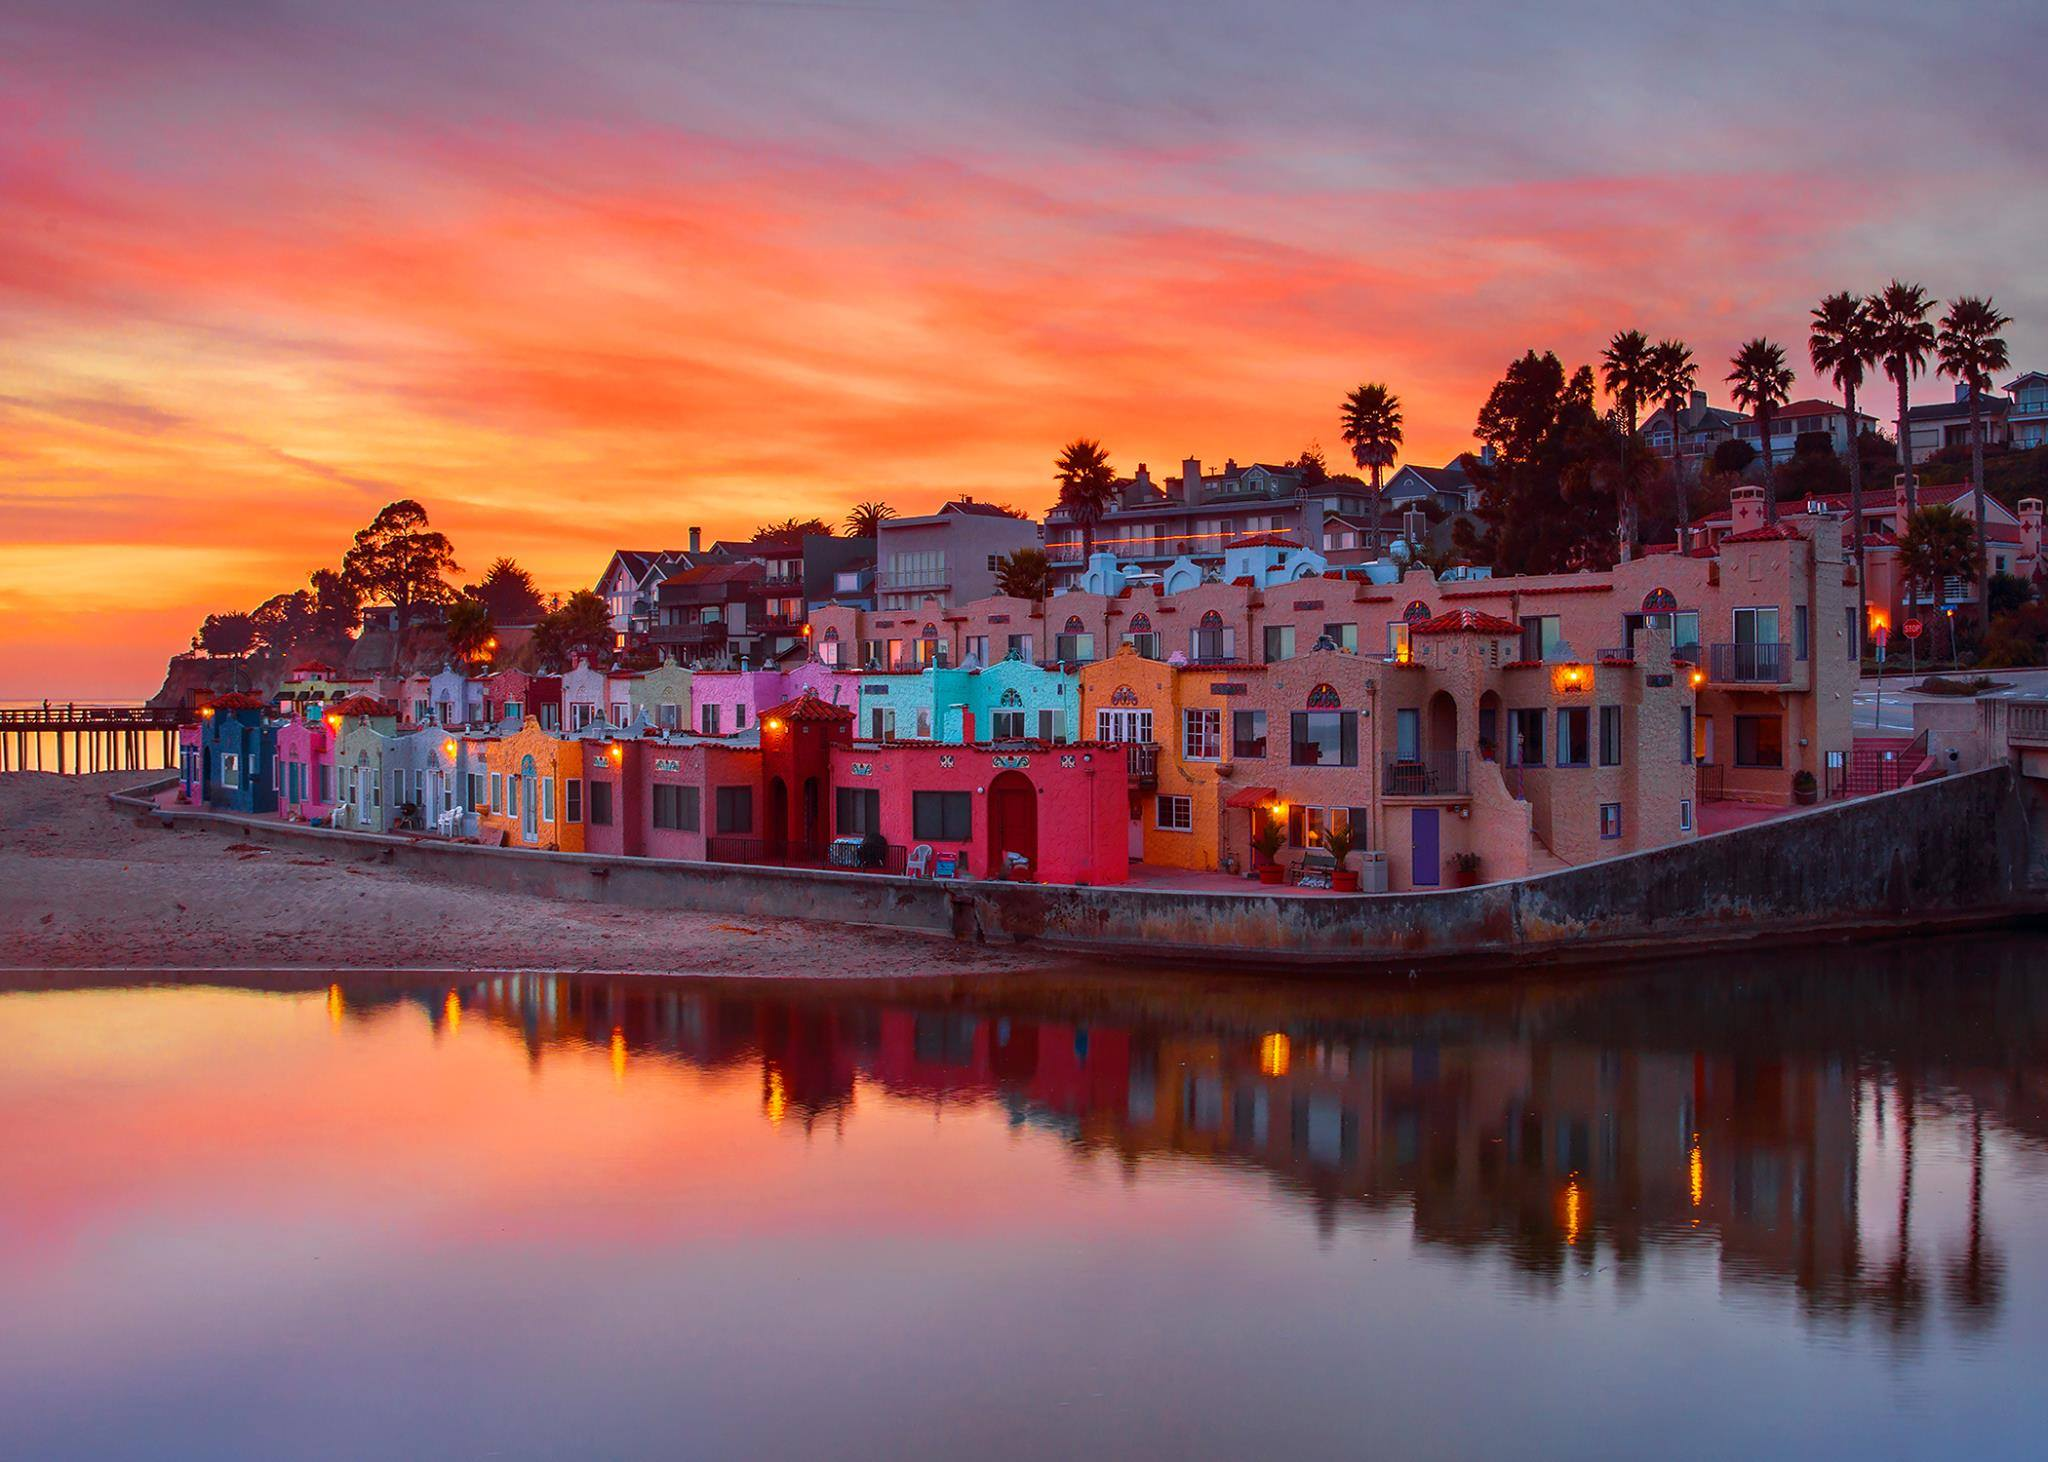 Houses - Gallery Capitola CA